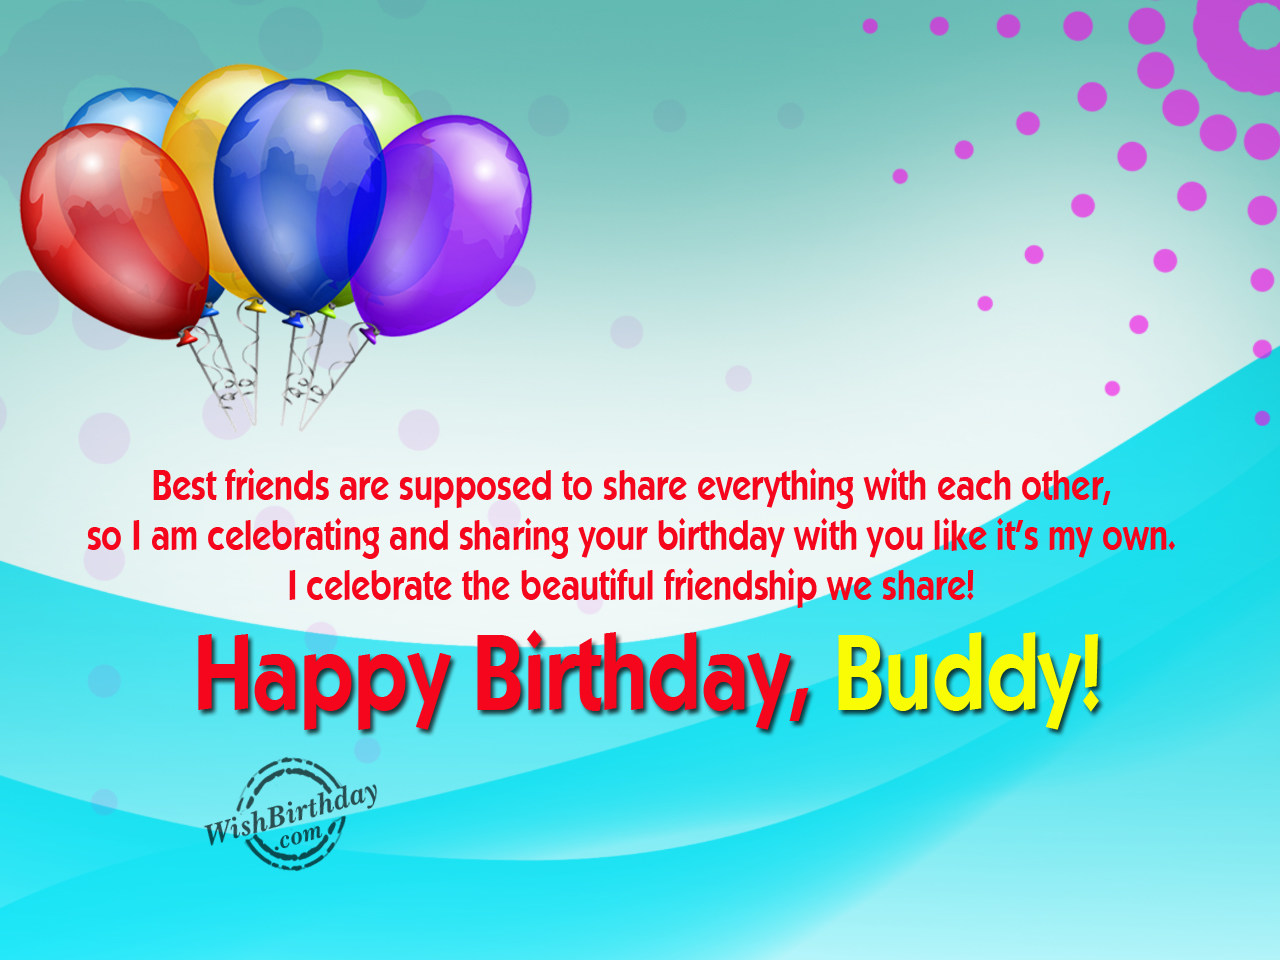 Happy Birthday, Buddy! - WishBirthday.com - 228.9KB